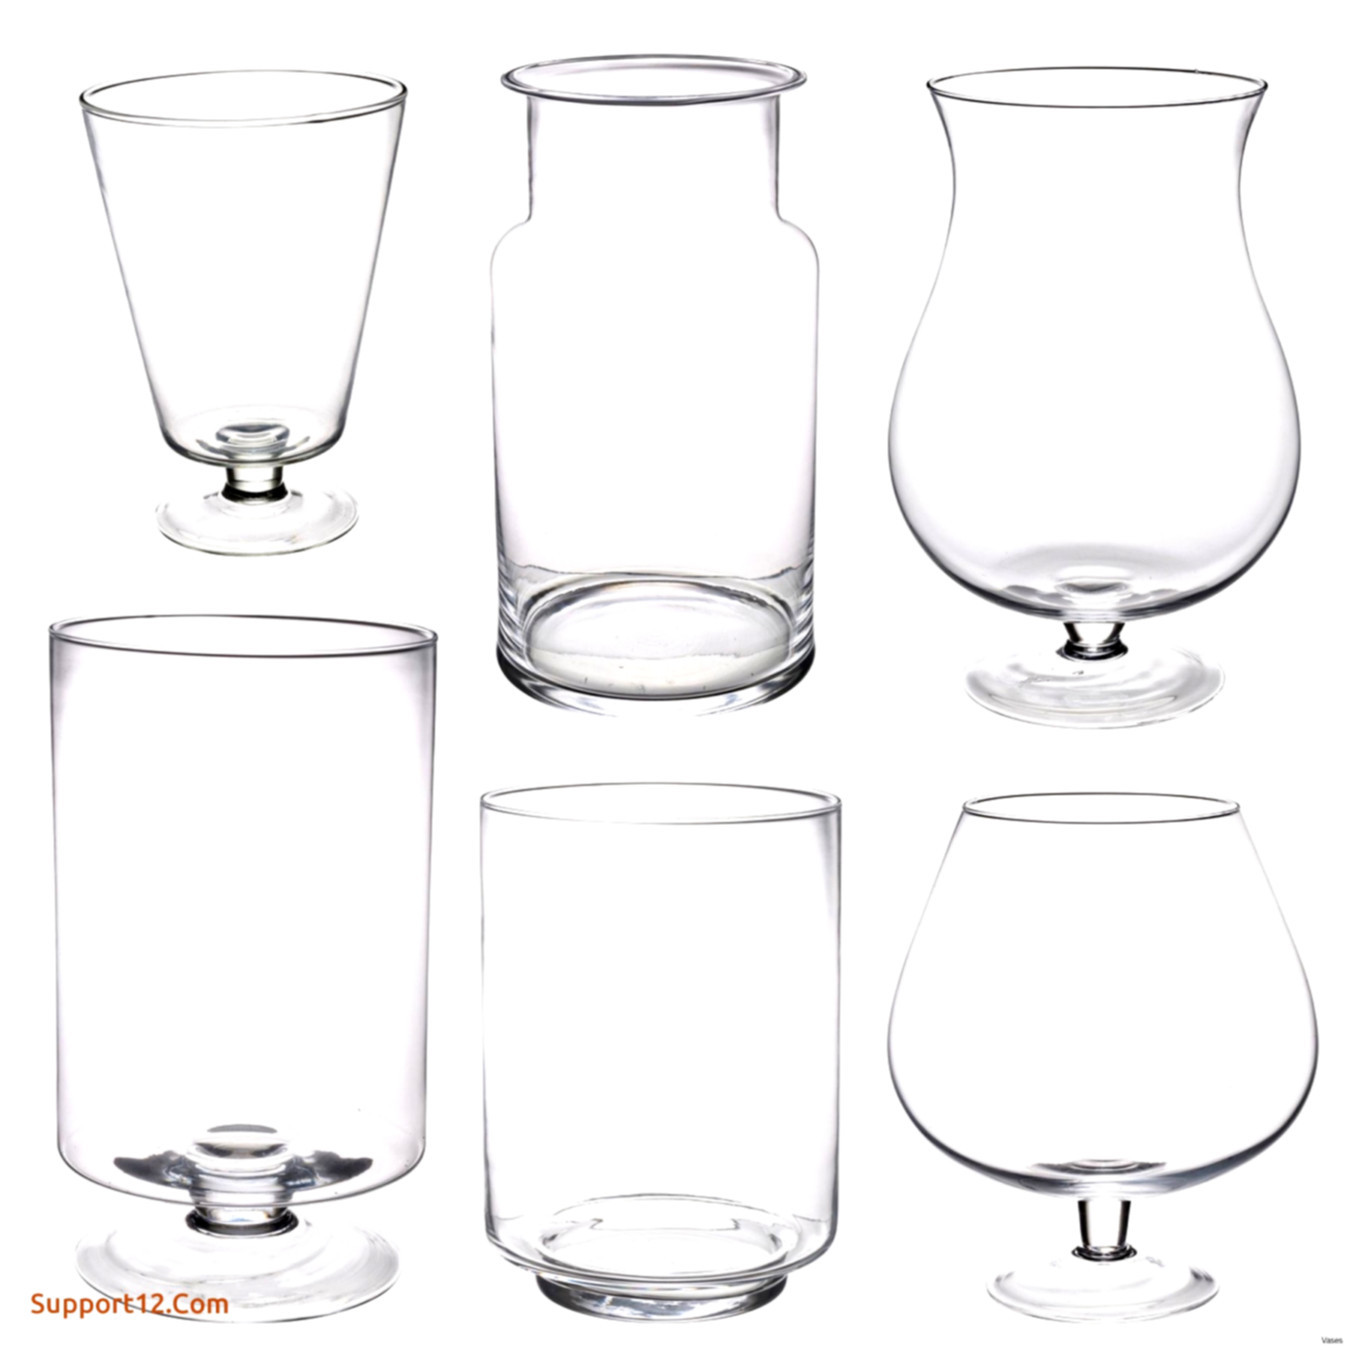 19 Cute Small Square Glass Vases 2021 free download small square glass vases of seven simple but important things to remember about square vases with regard to bulk glass vases wilmingtonncbeerweek